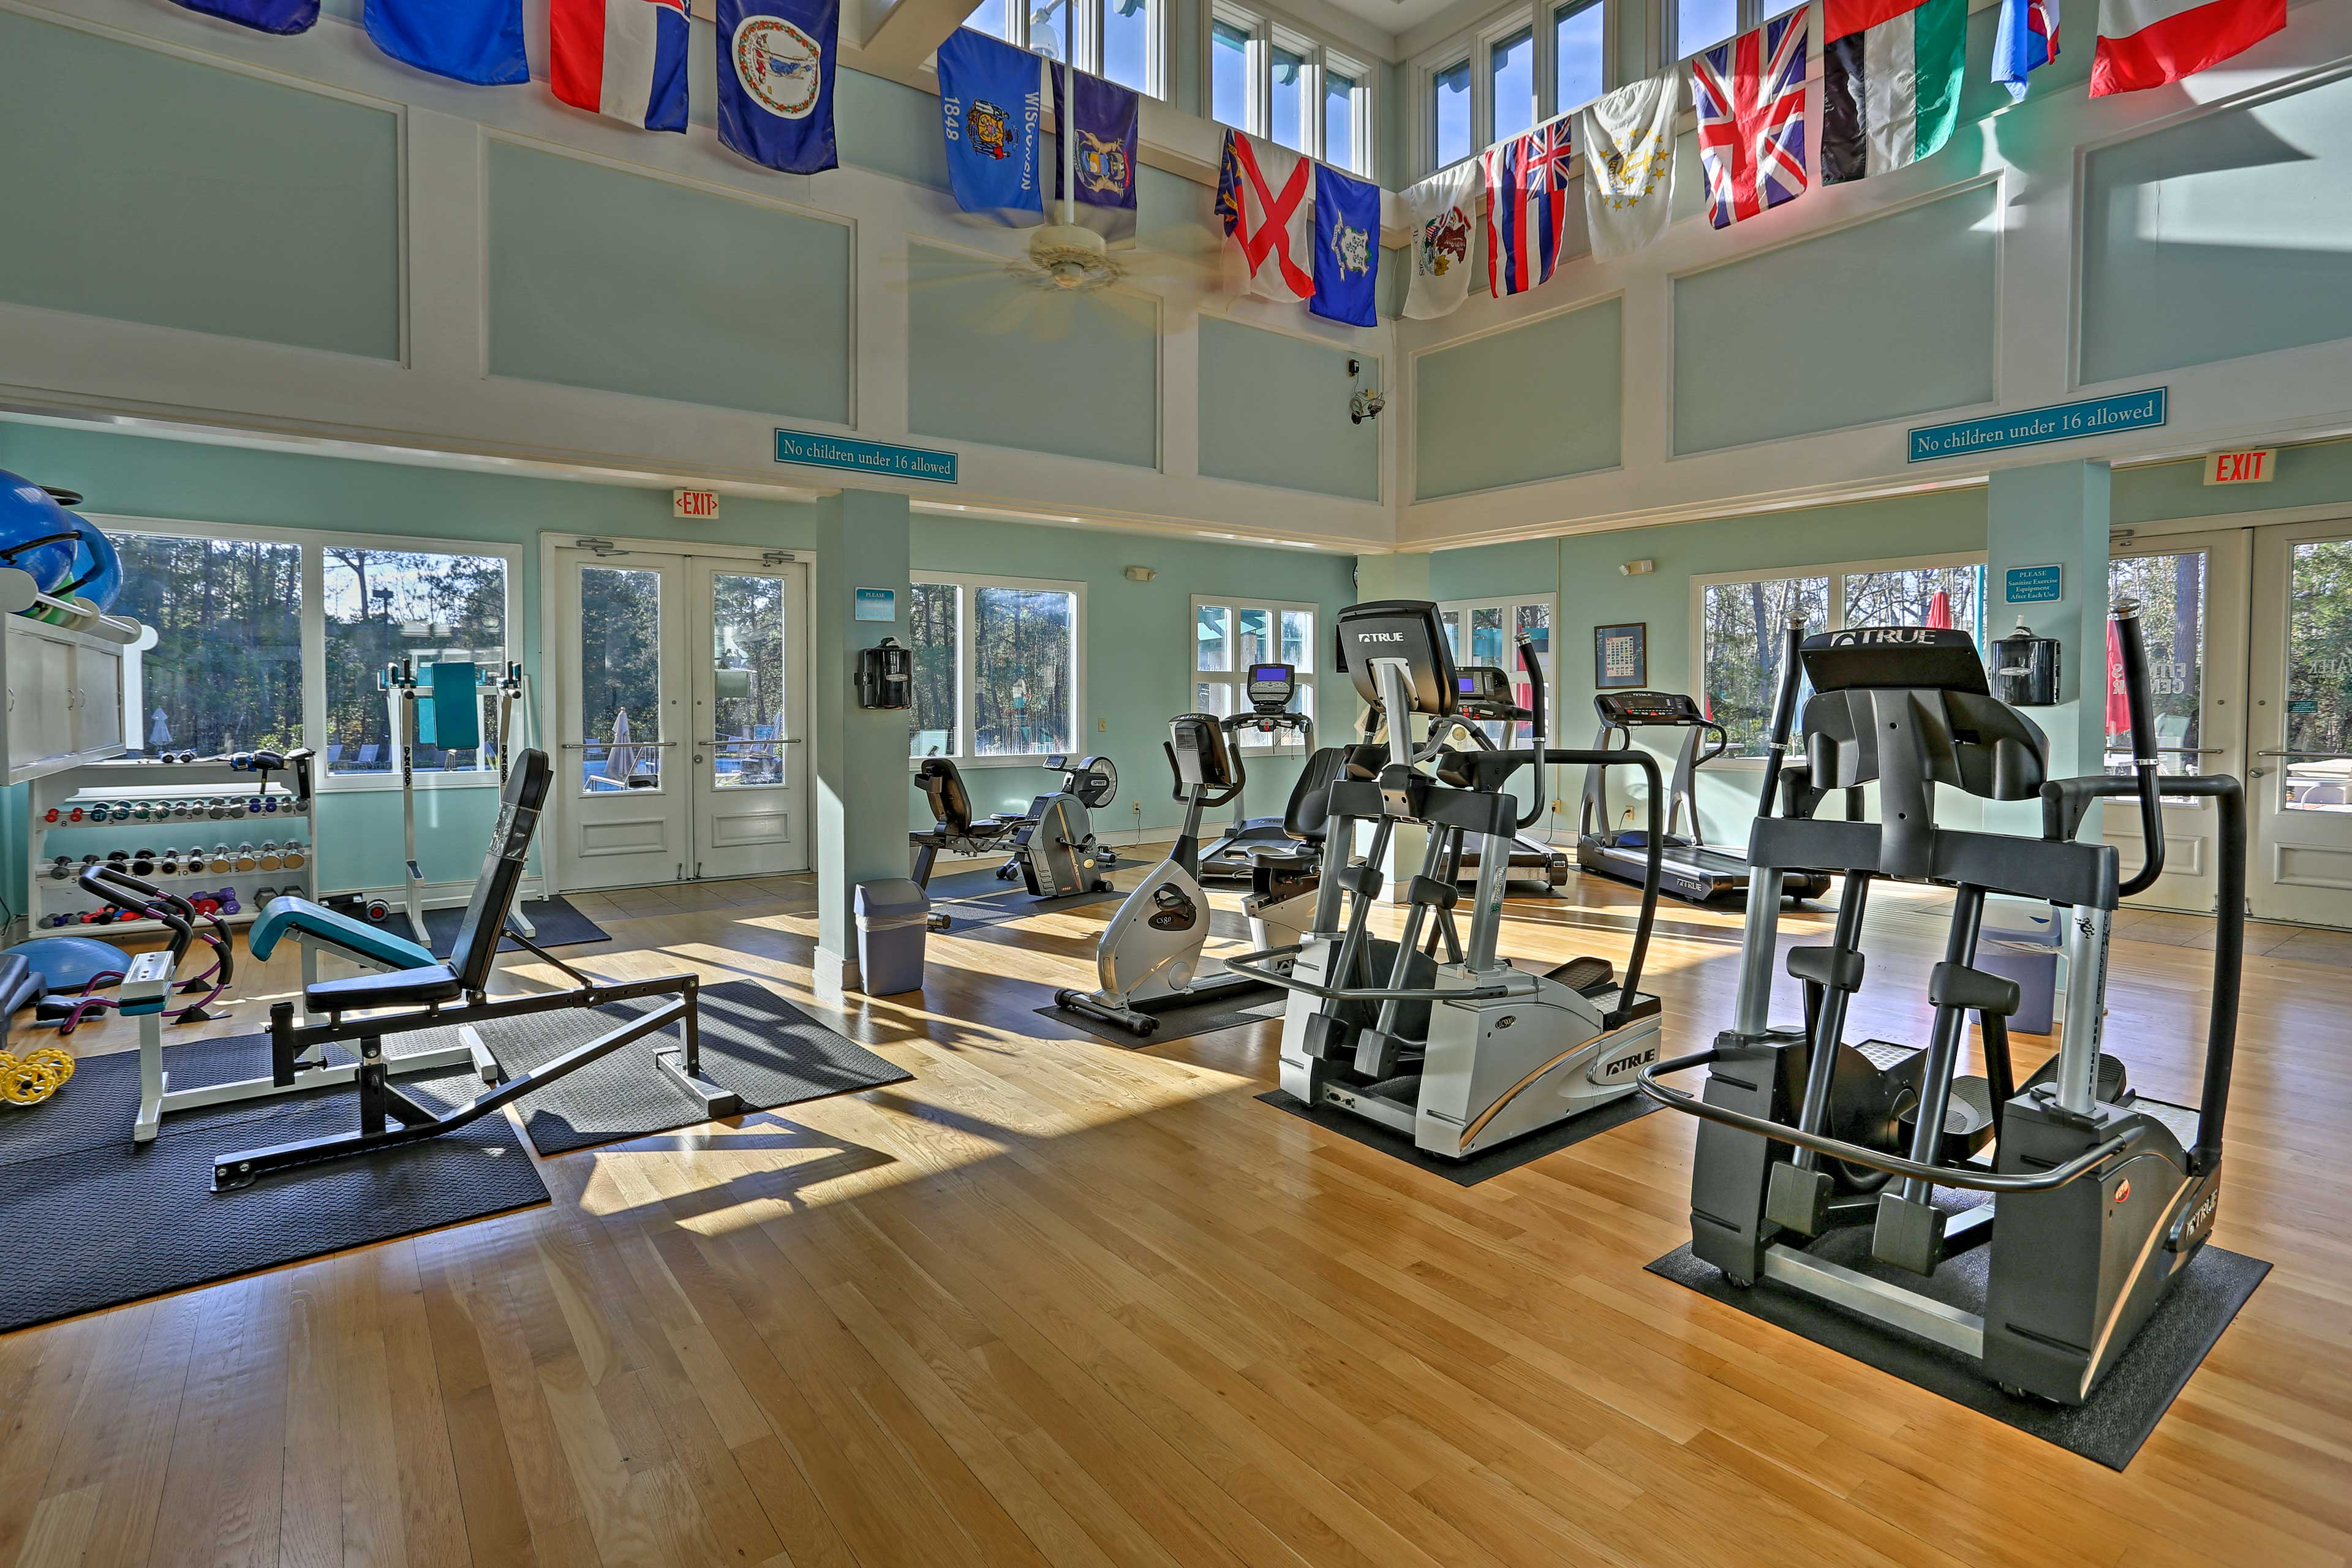 Keep up your fitness in the workout room.